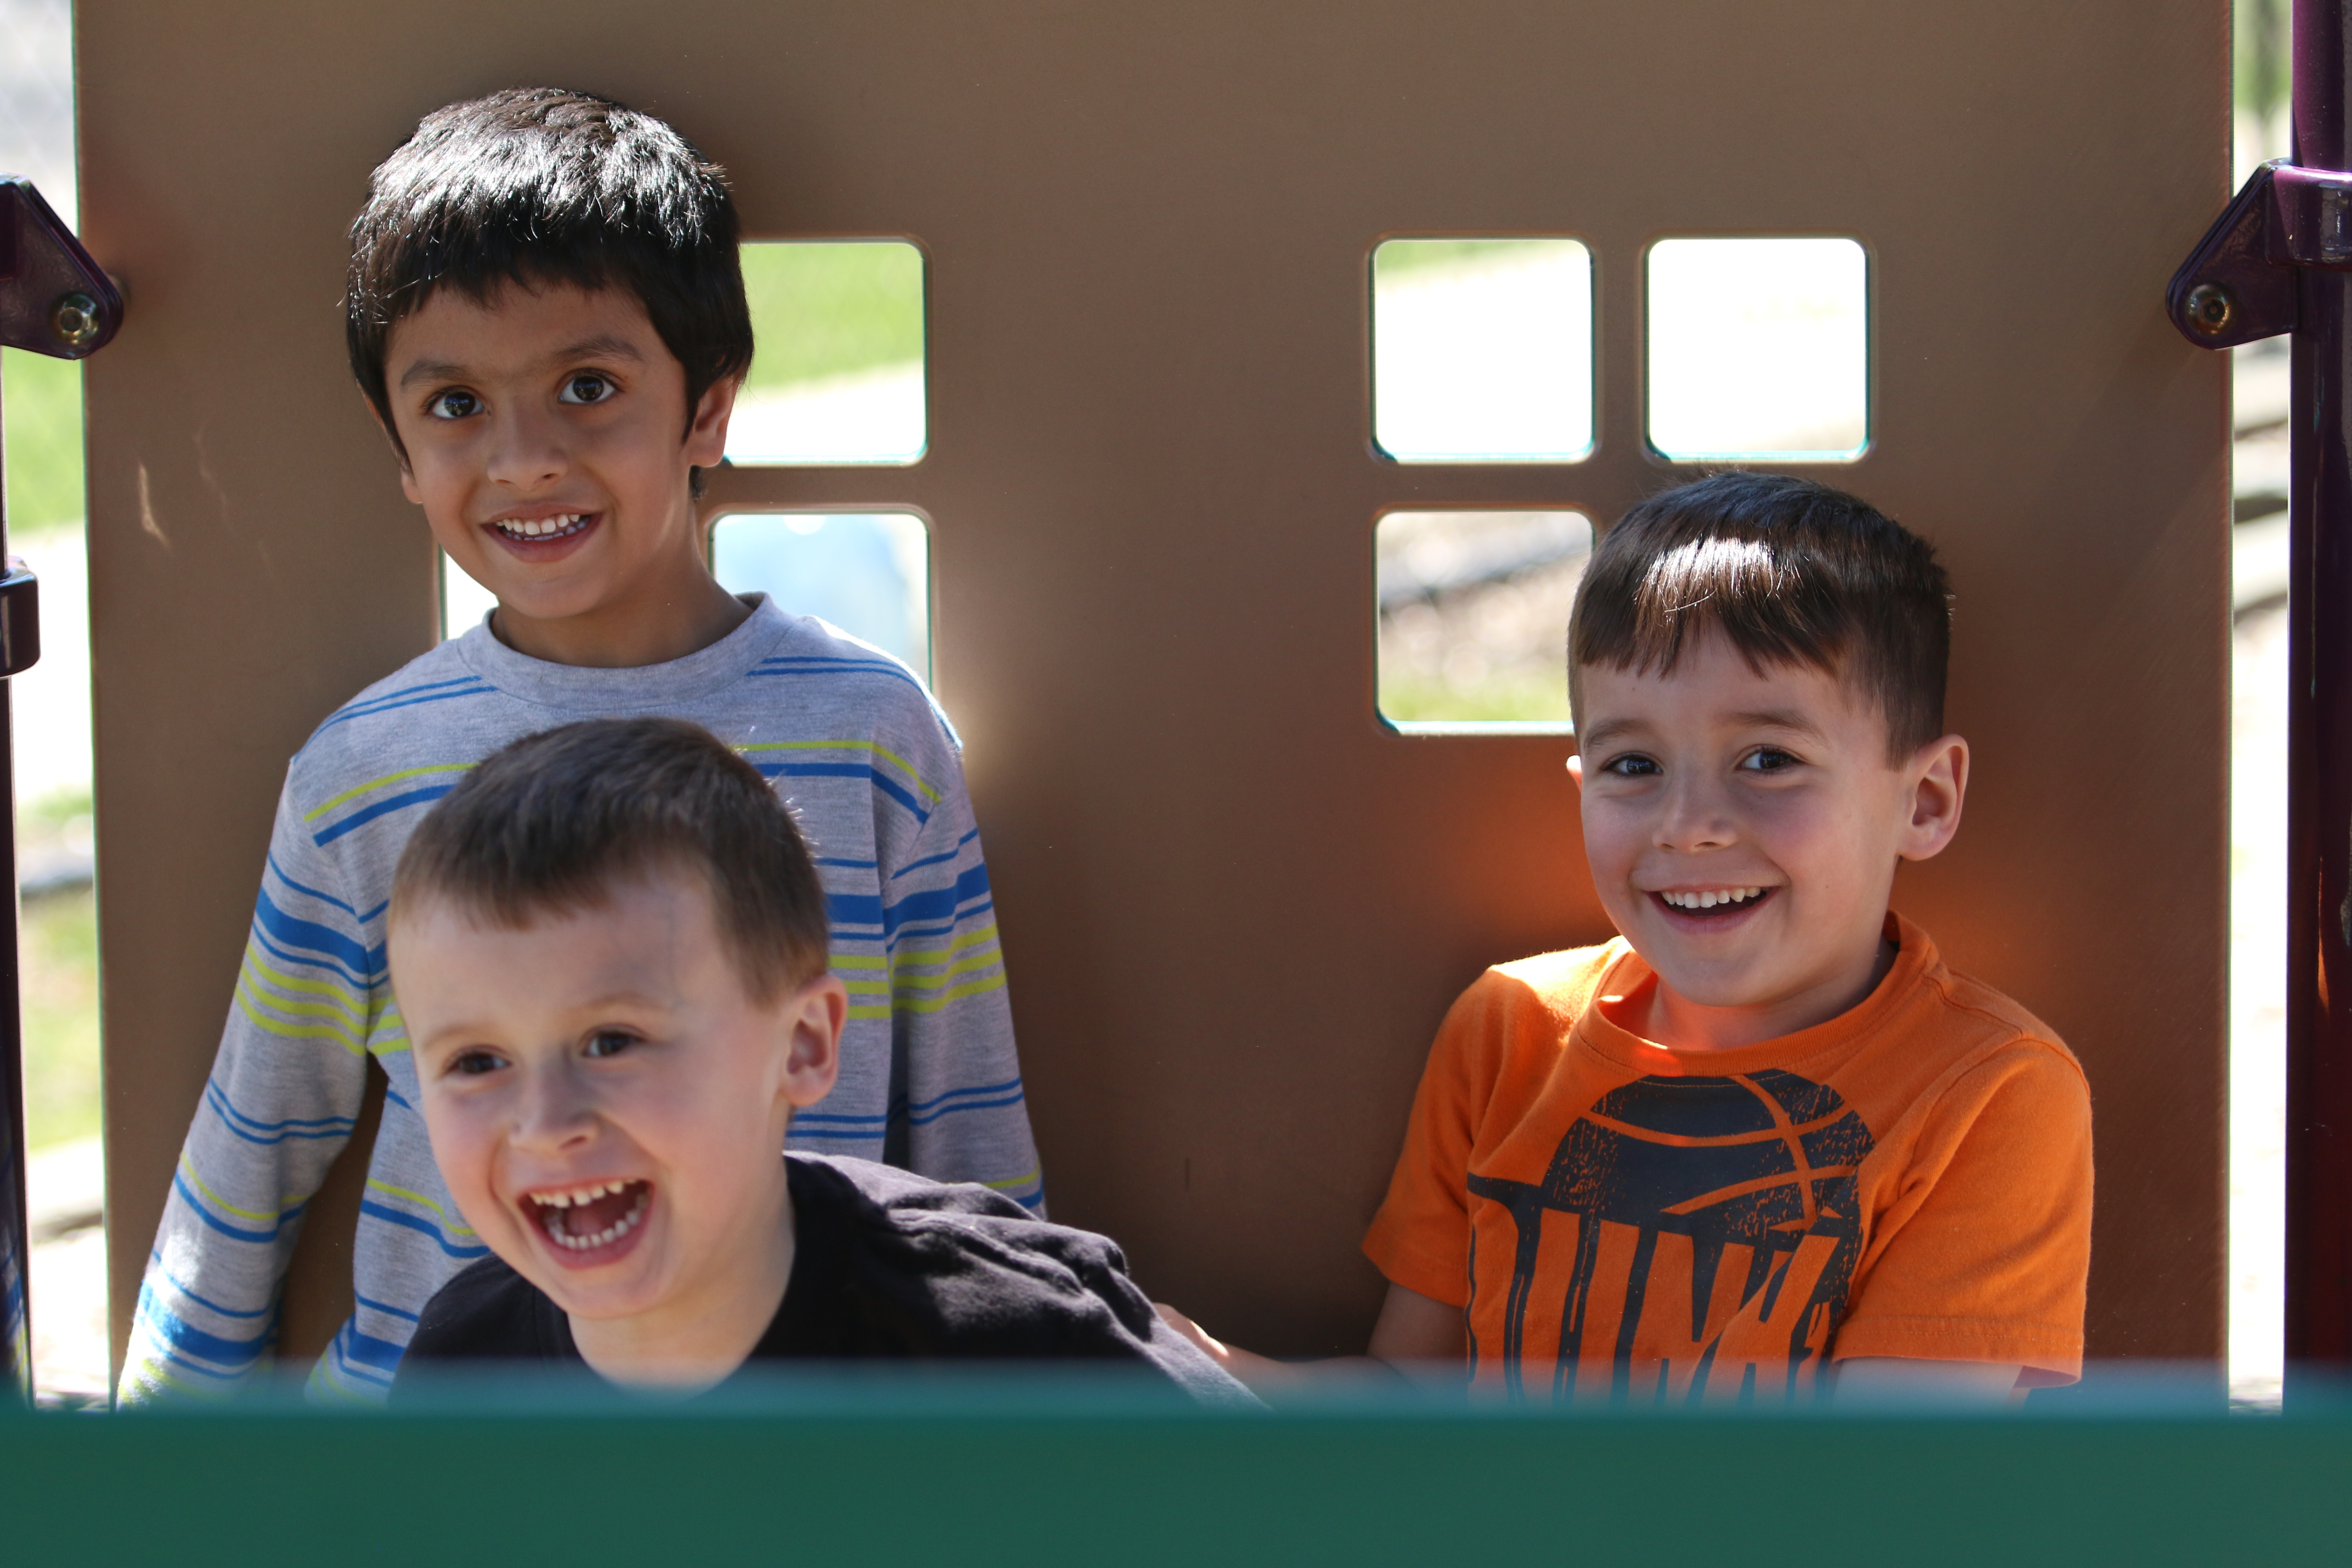 Boys playing in playhouse on preschool playground